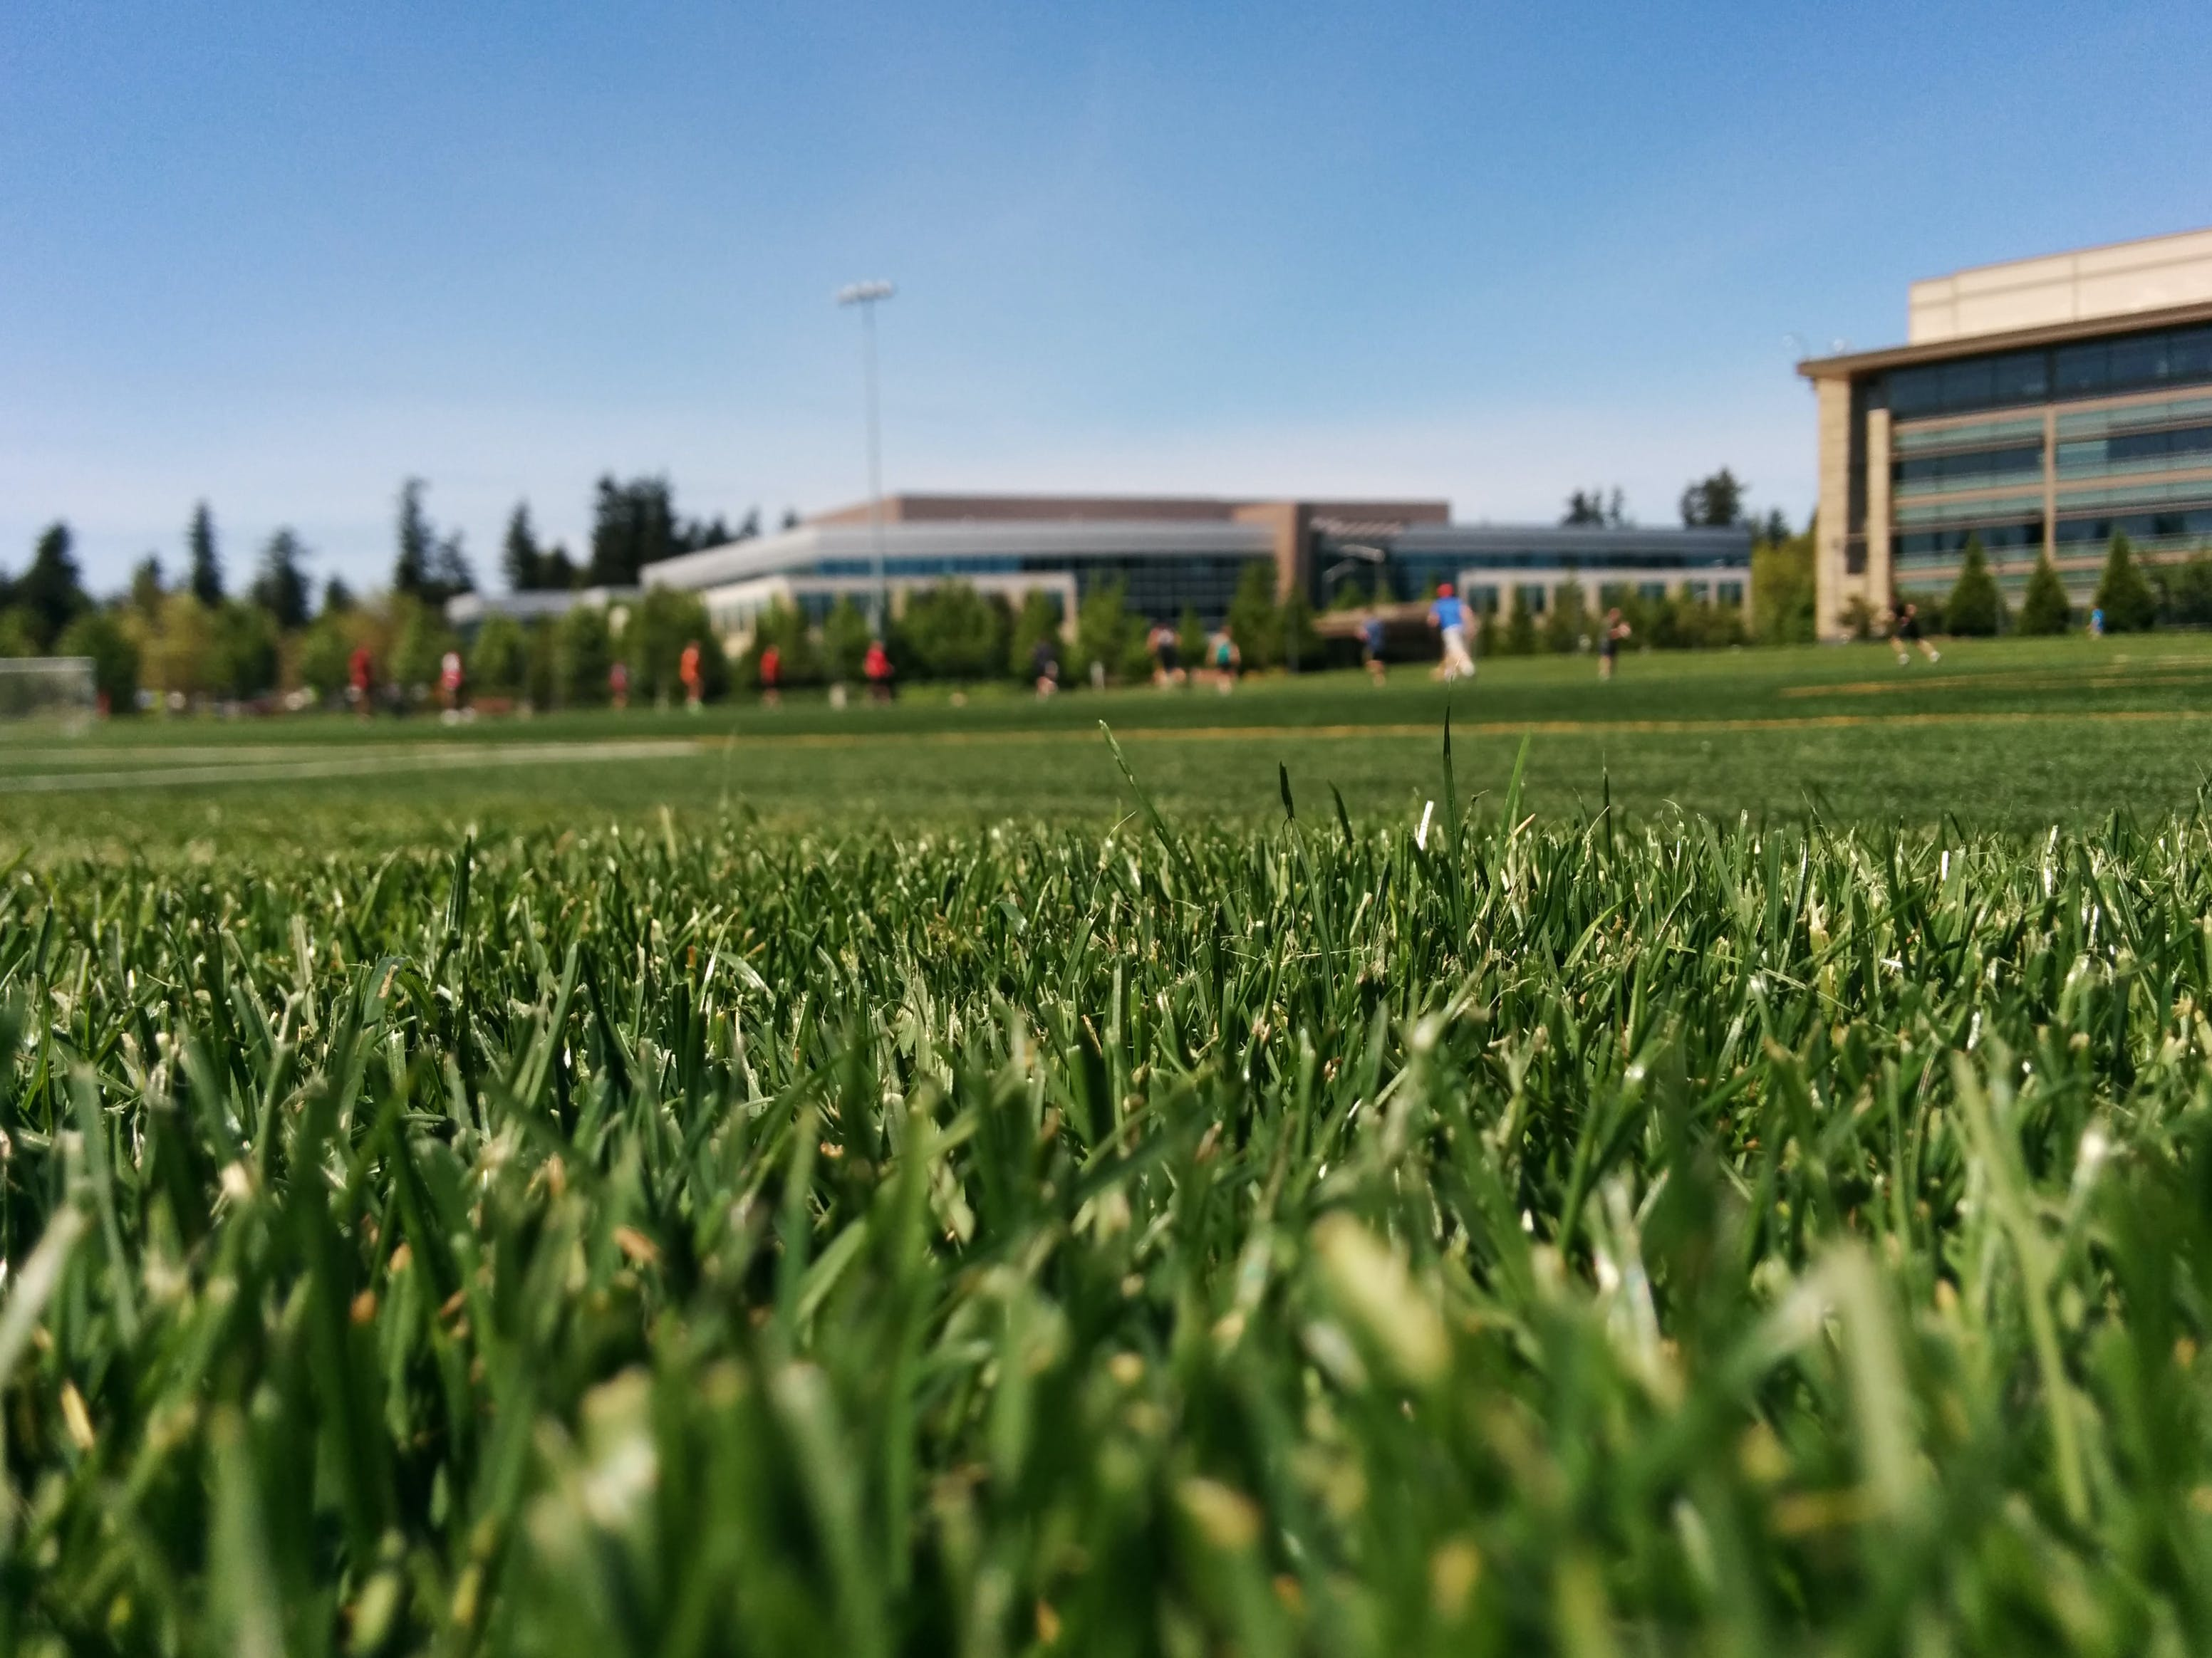 Free stock photo of grass, lawn, sports field, turf